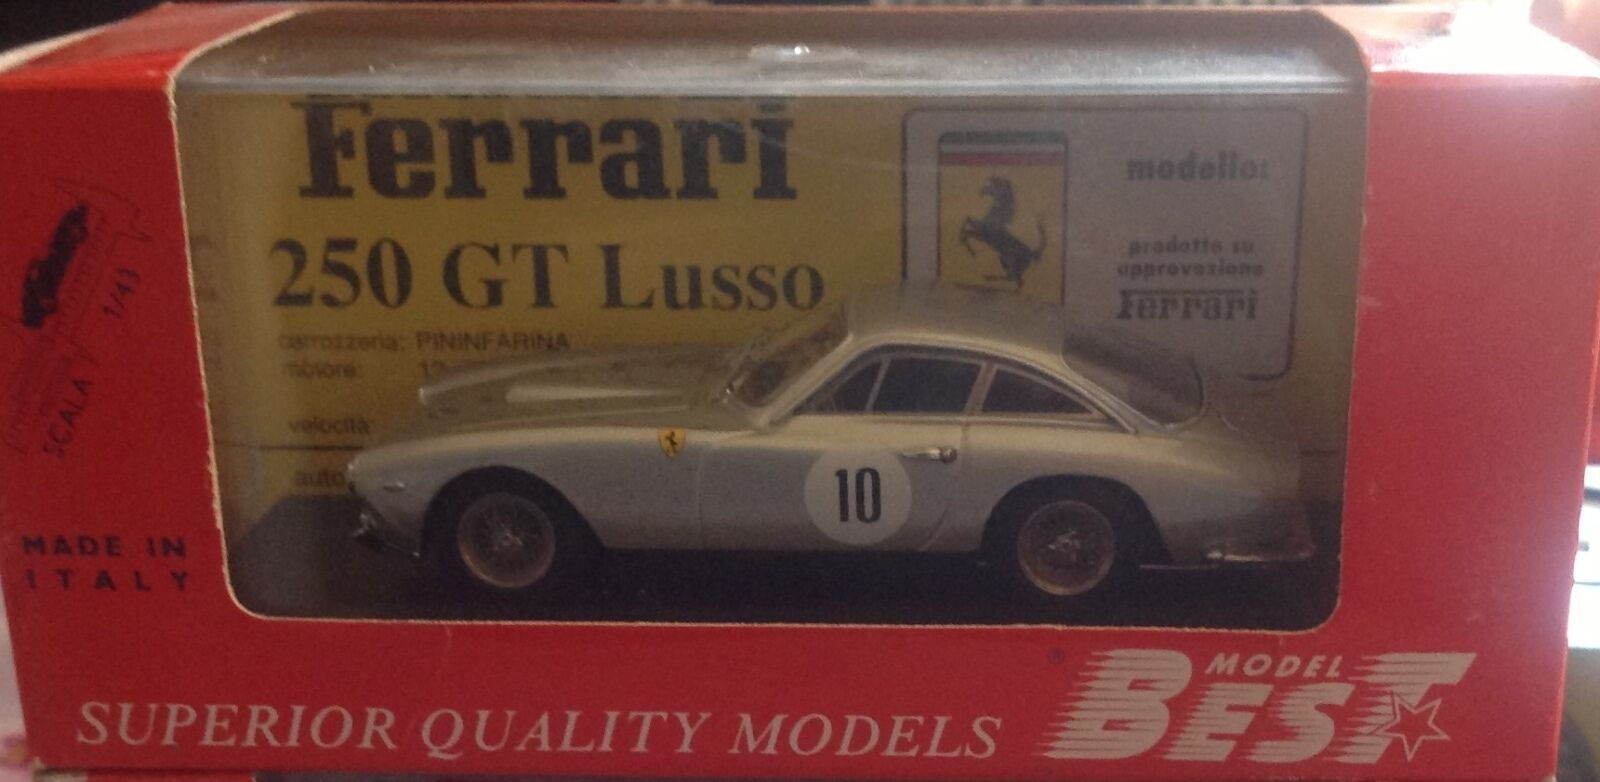 FERRARI 250 GTL scala 1/43 - MODEL BEST 9109